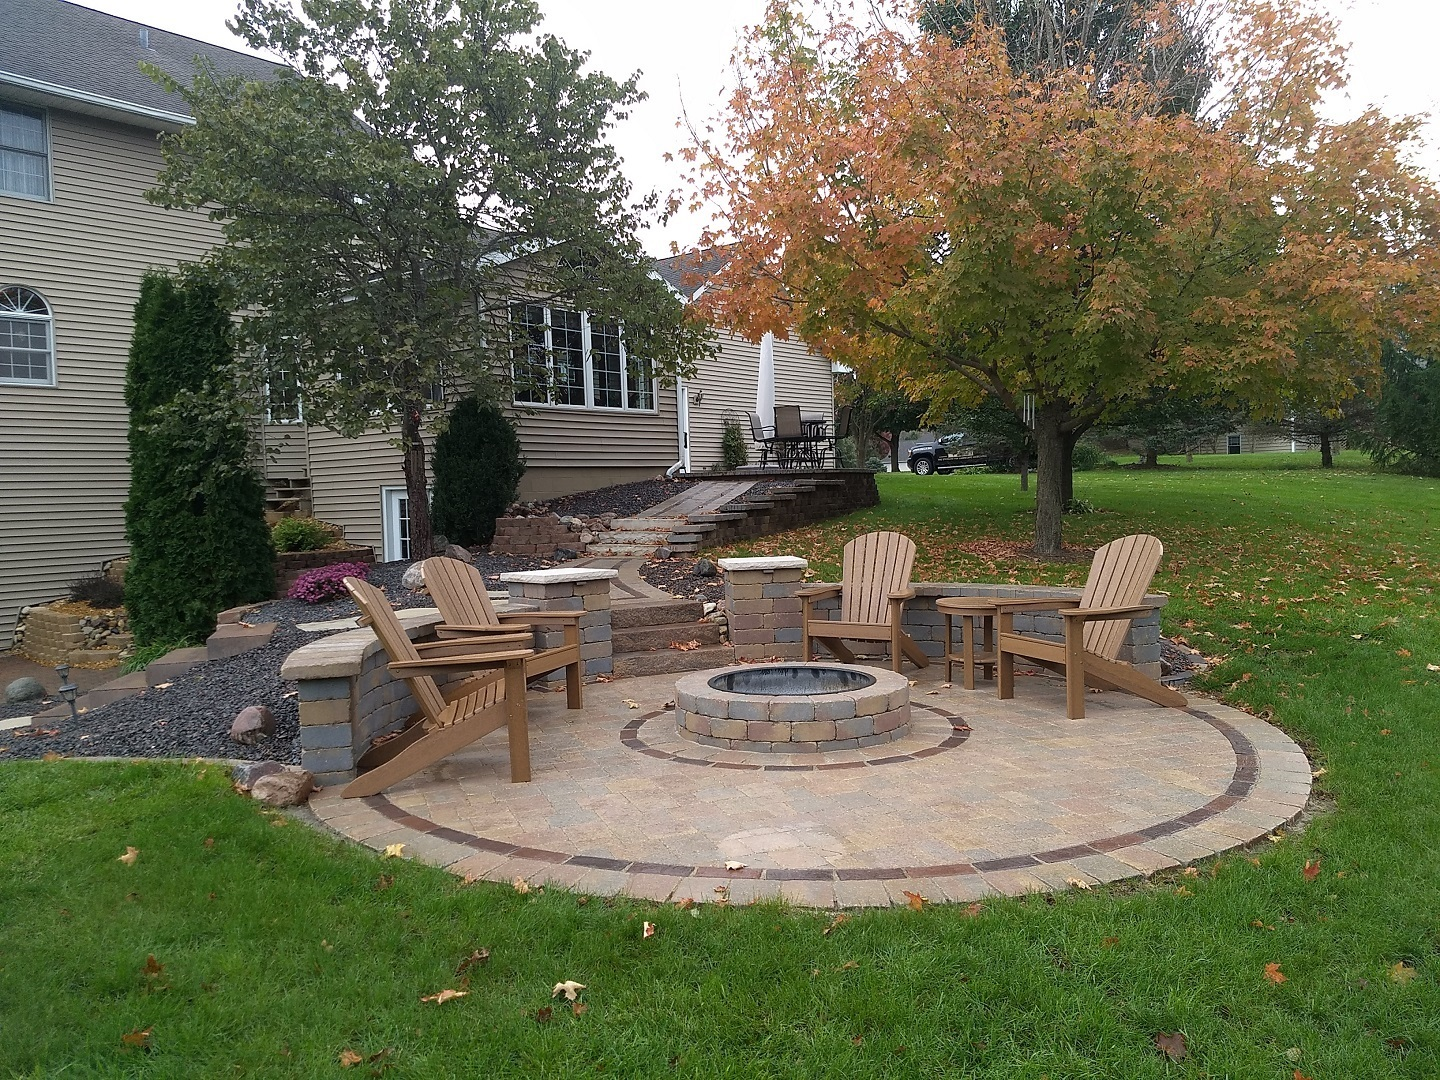 patio with fire pit.jpg